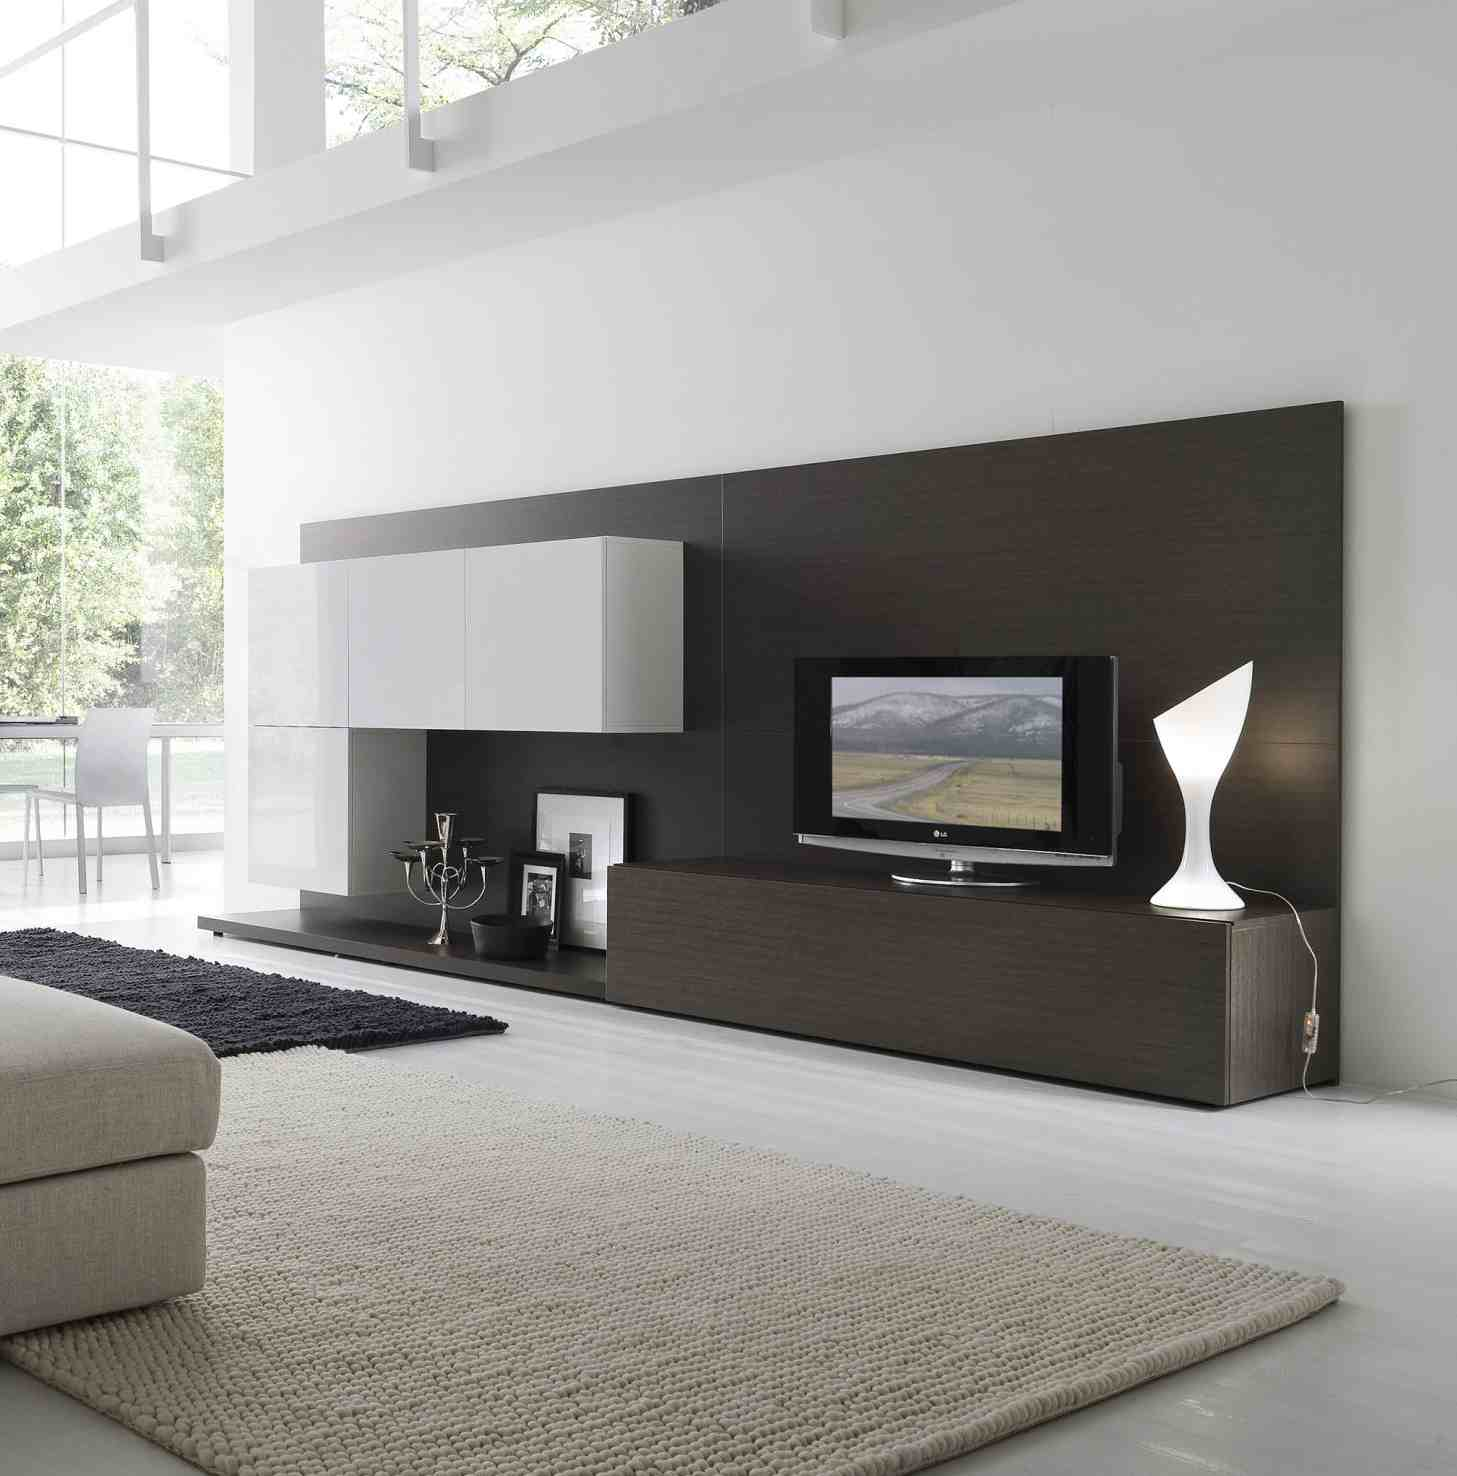 living room contemporary interiors how to decorate a small long narrow interior design and furnishings minimalistic furnishings1